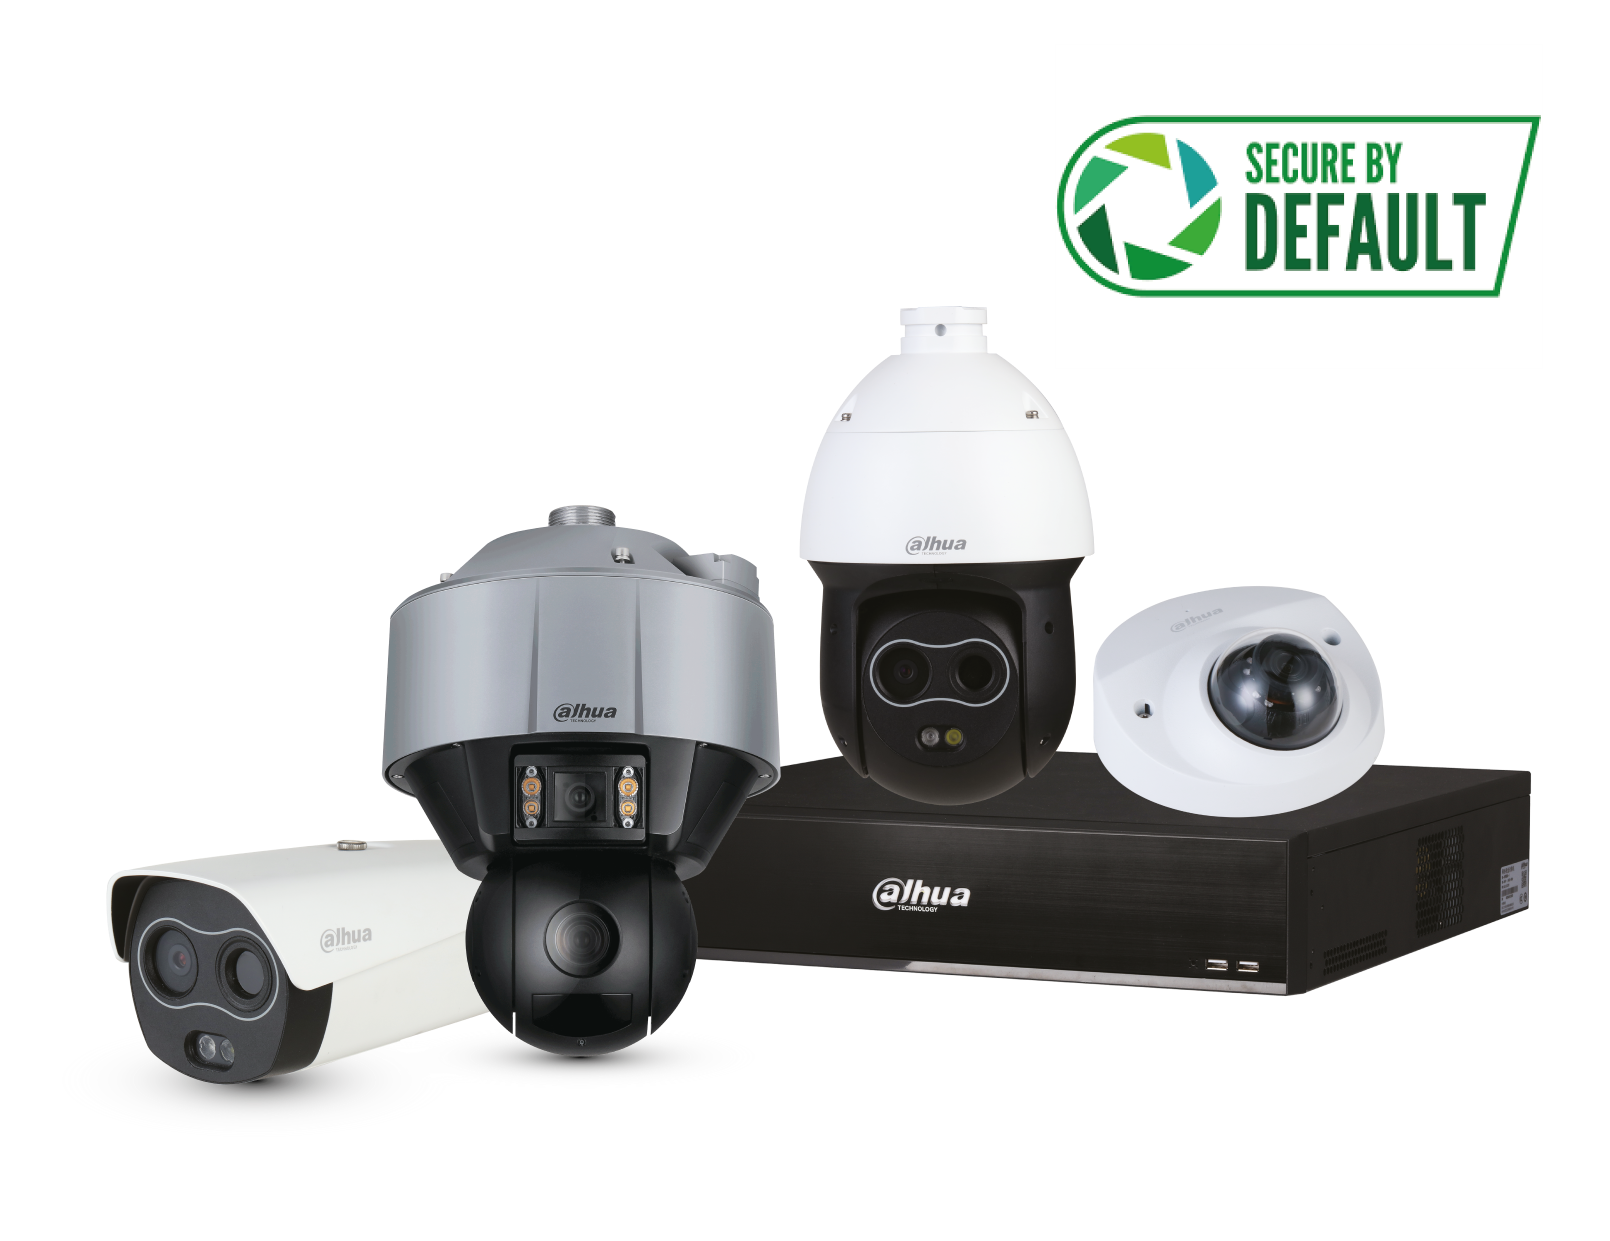 Dahua IP camera range awarded 'Secure by Default' from Surveillance Camera Commissioner